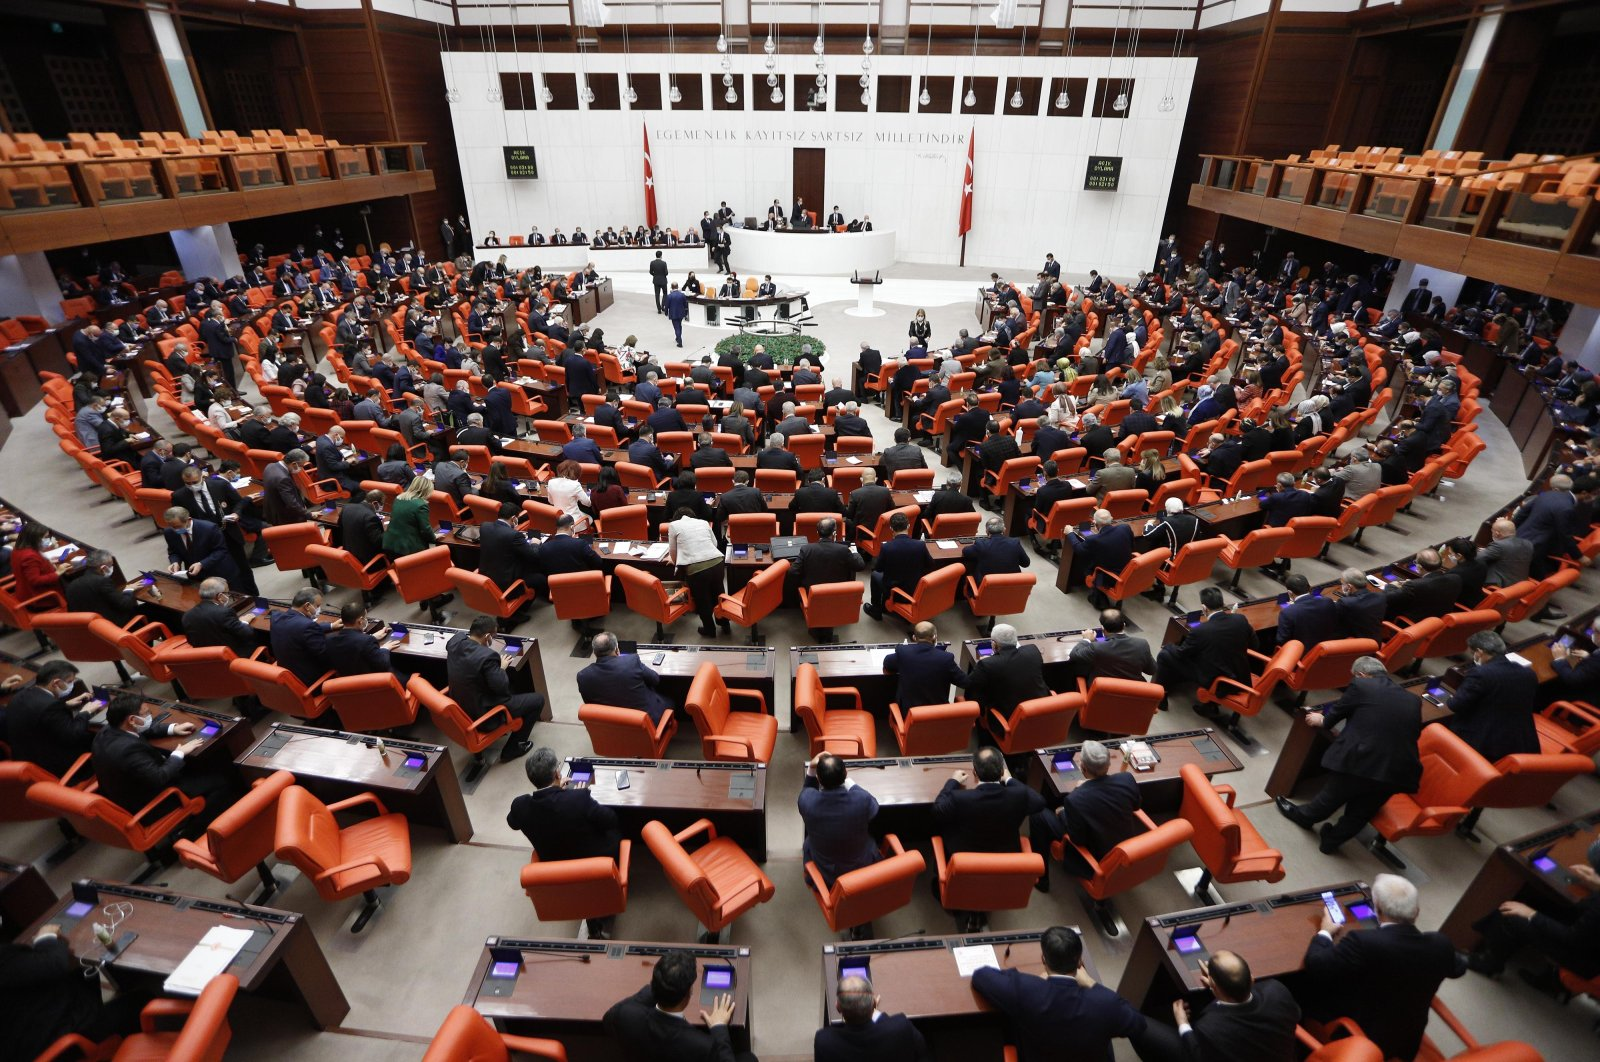 Budget negotiations are held at the Turkish Grand National Assembly in the capital Ankara, Turkey, Dec. 19, 2020. (DHA Photo)